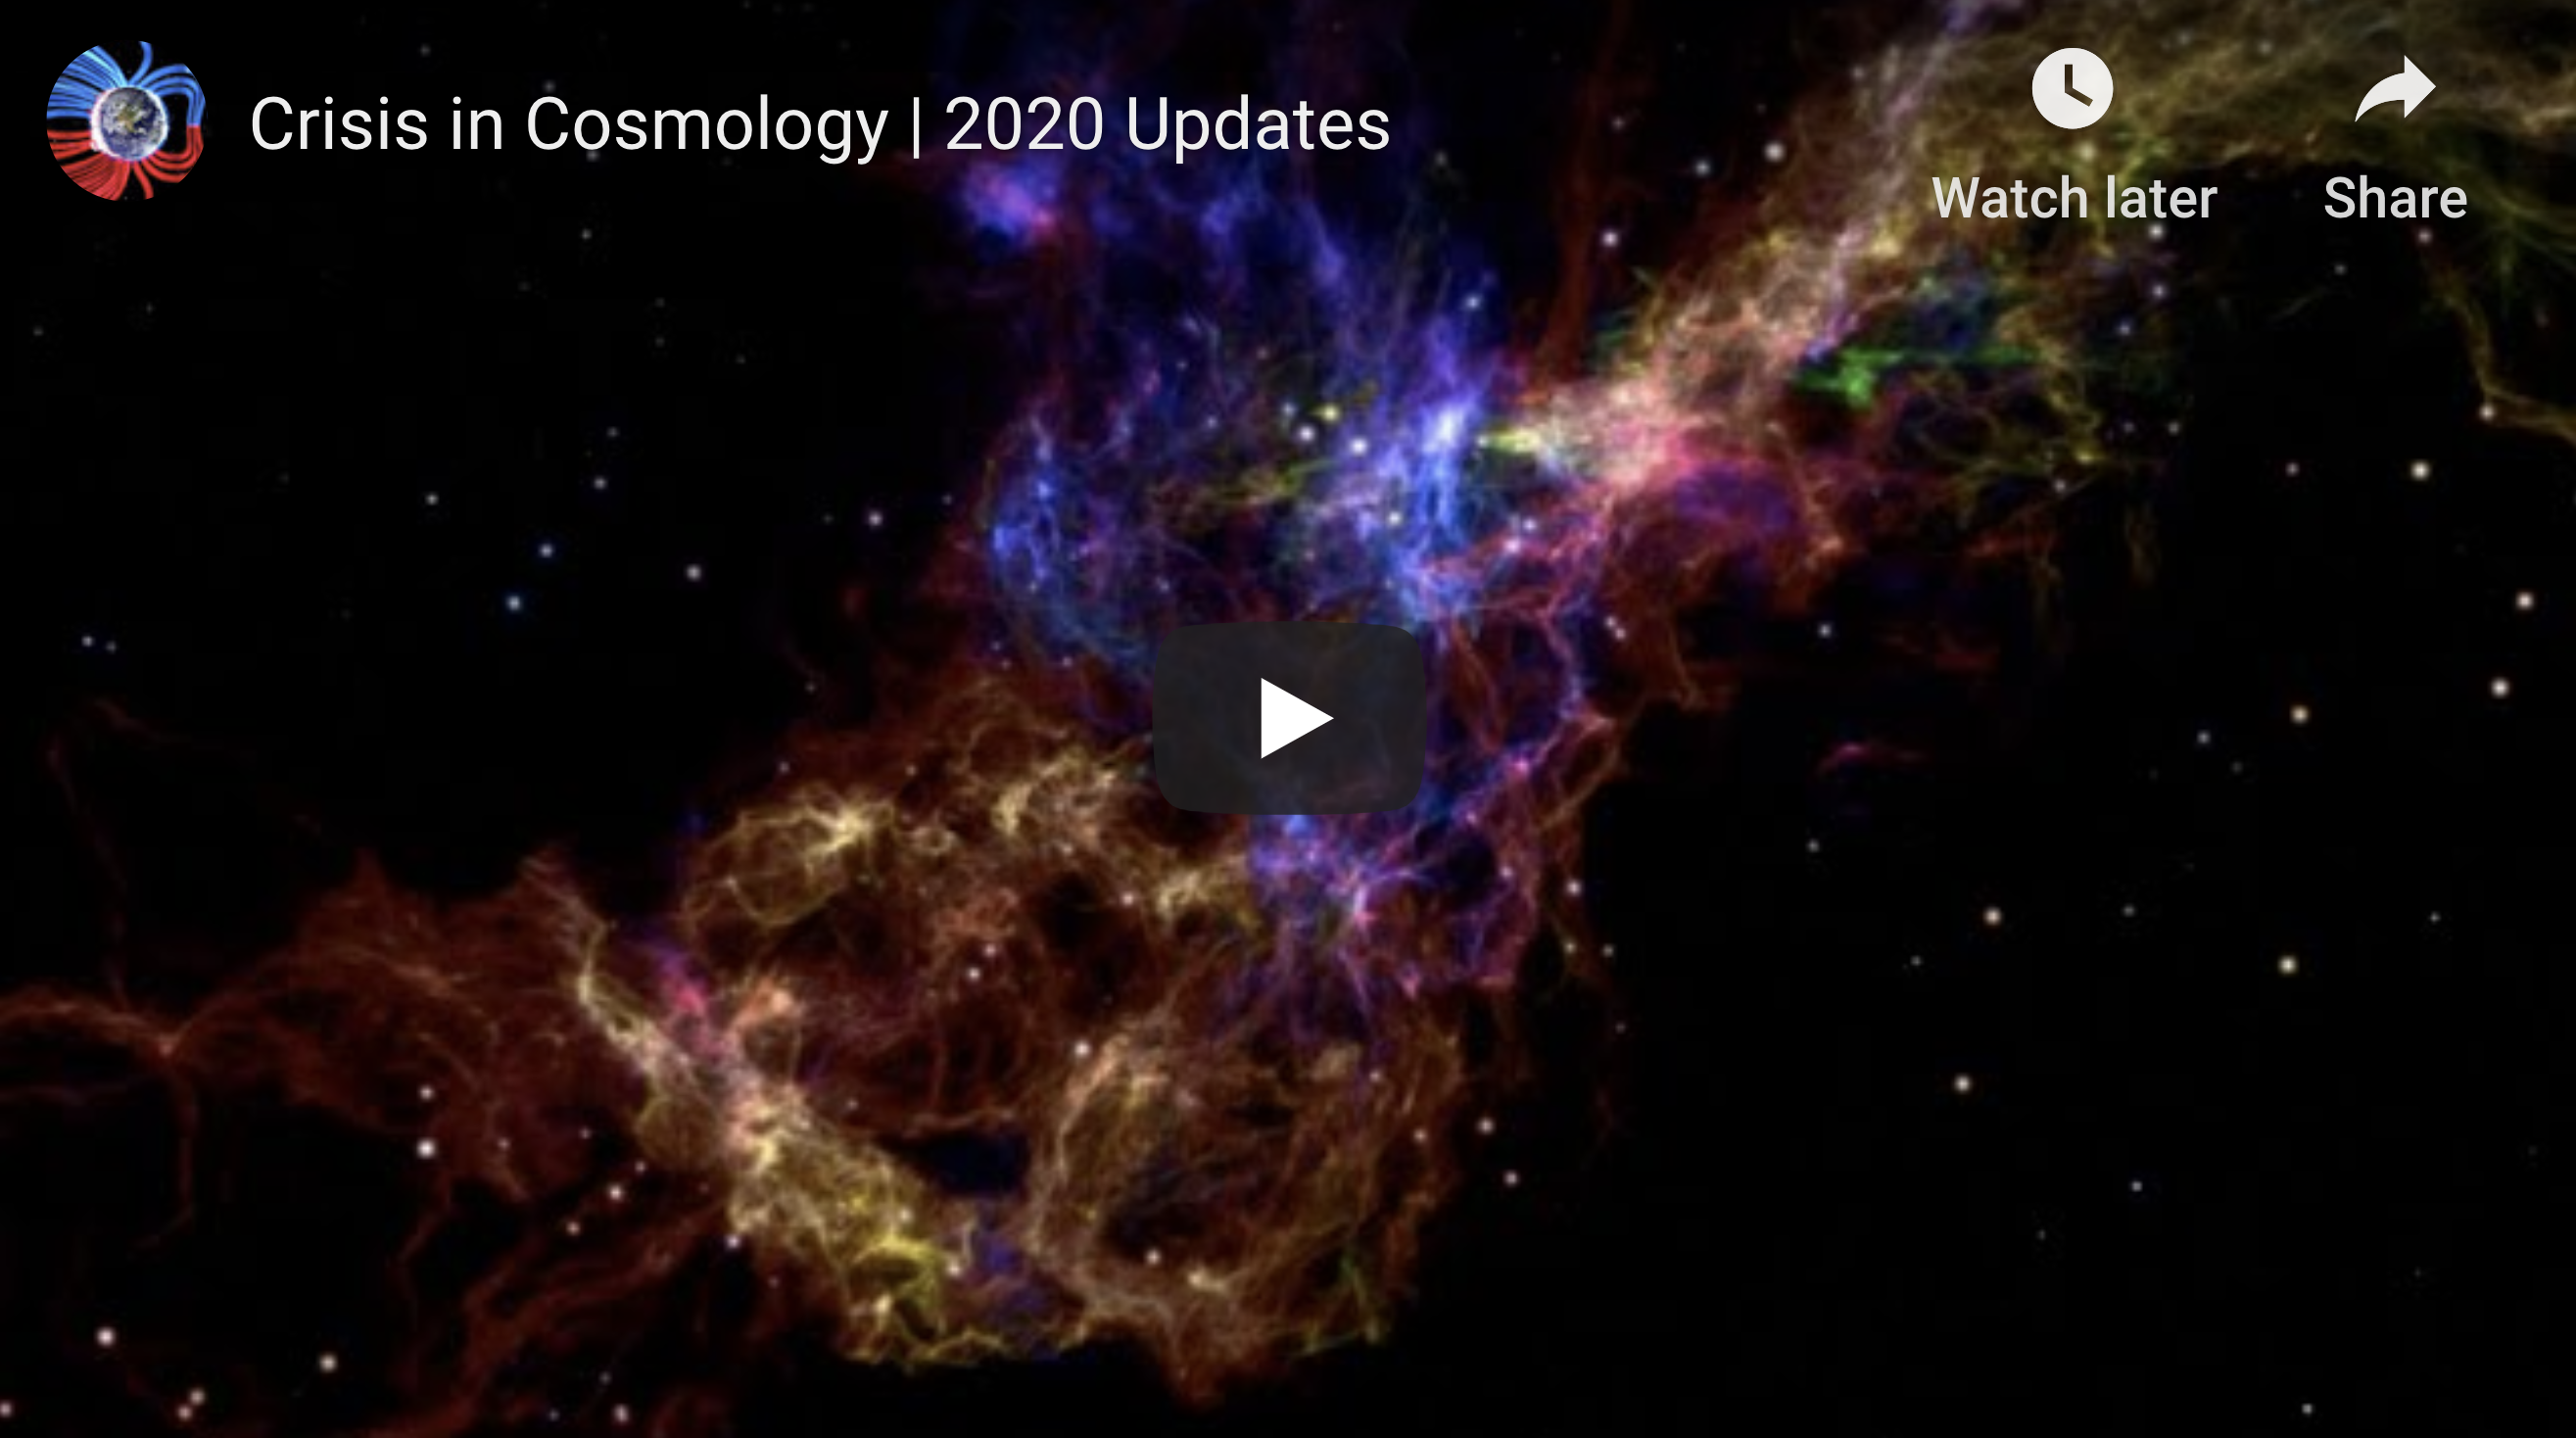 Crisis in Cosmology 2020 Updates EXZM Suspicious Observers Post September 10th 2020